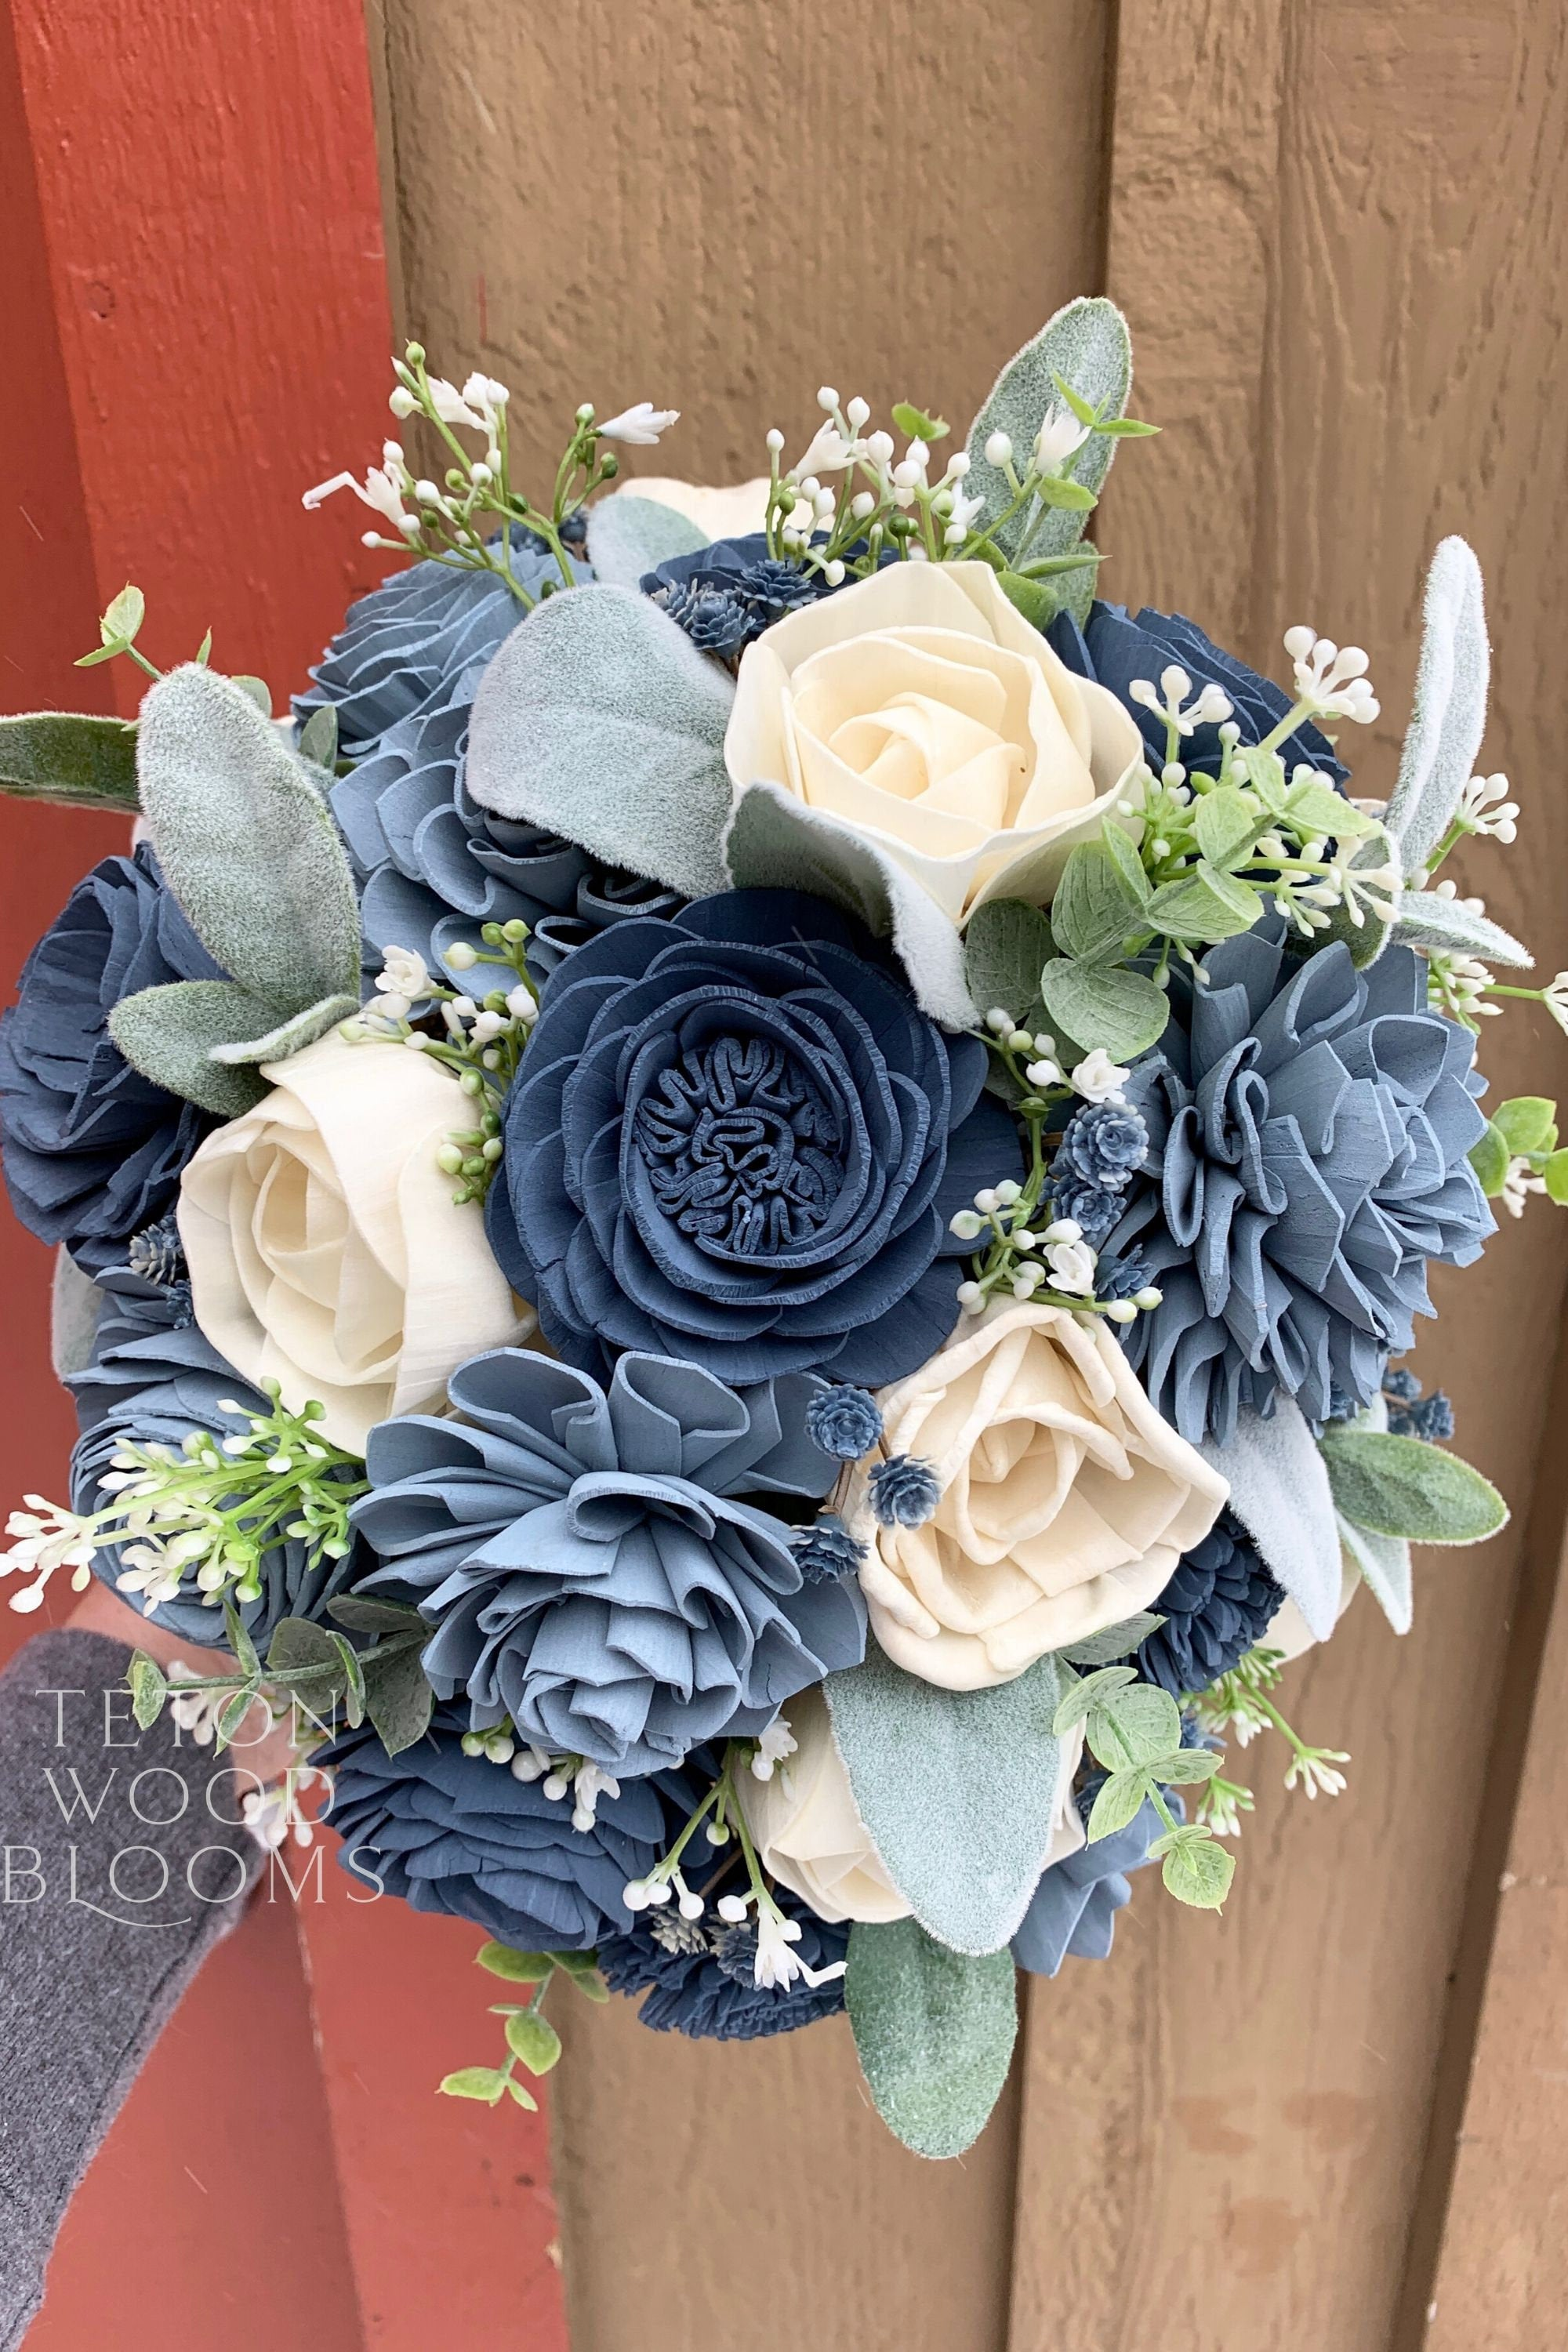 Dusty Blue And Slate Blue Bouquet Teton Wood Blooms